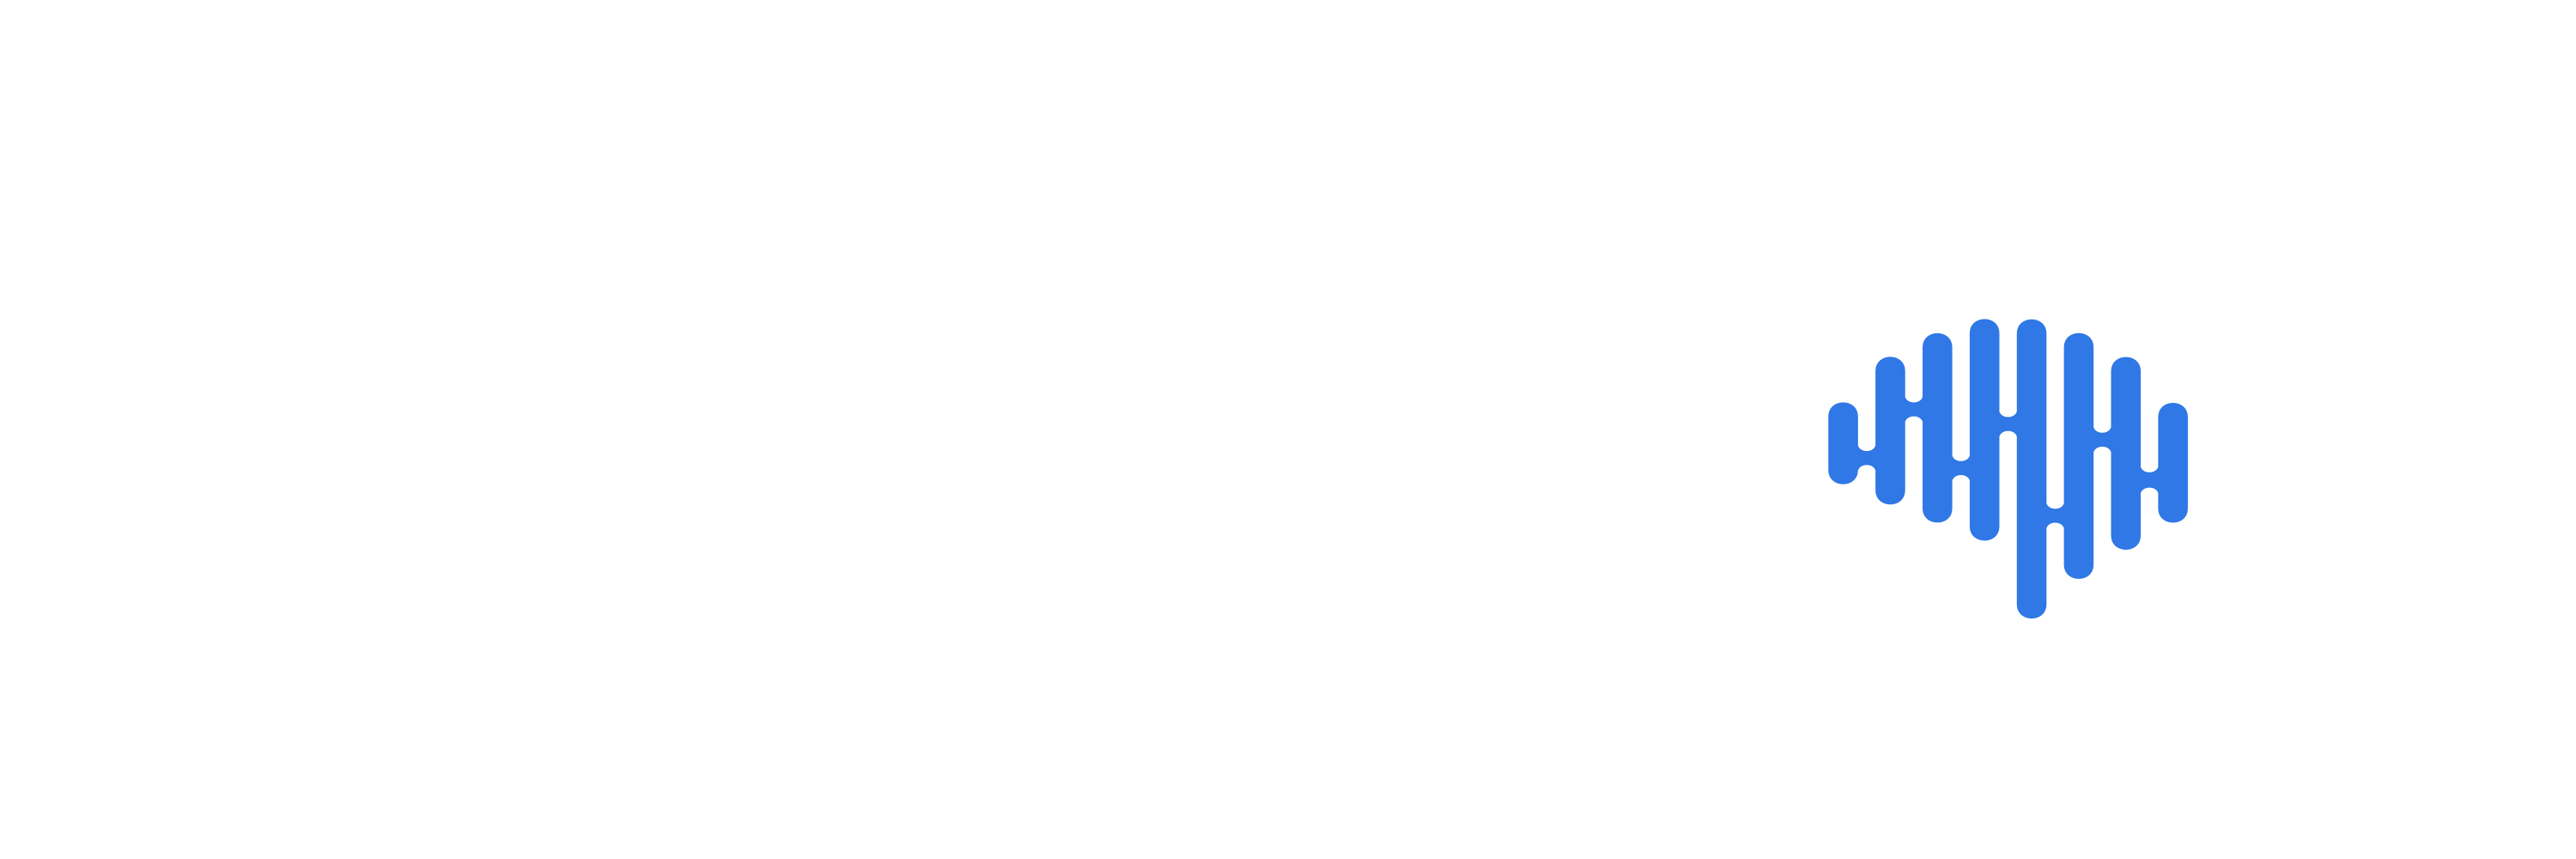 immersion_logo_whitetext_blue_2f7ae5